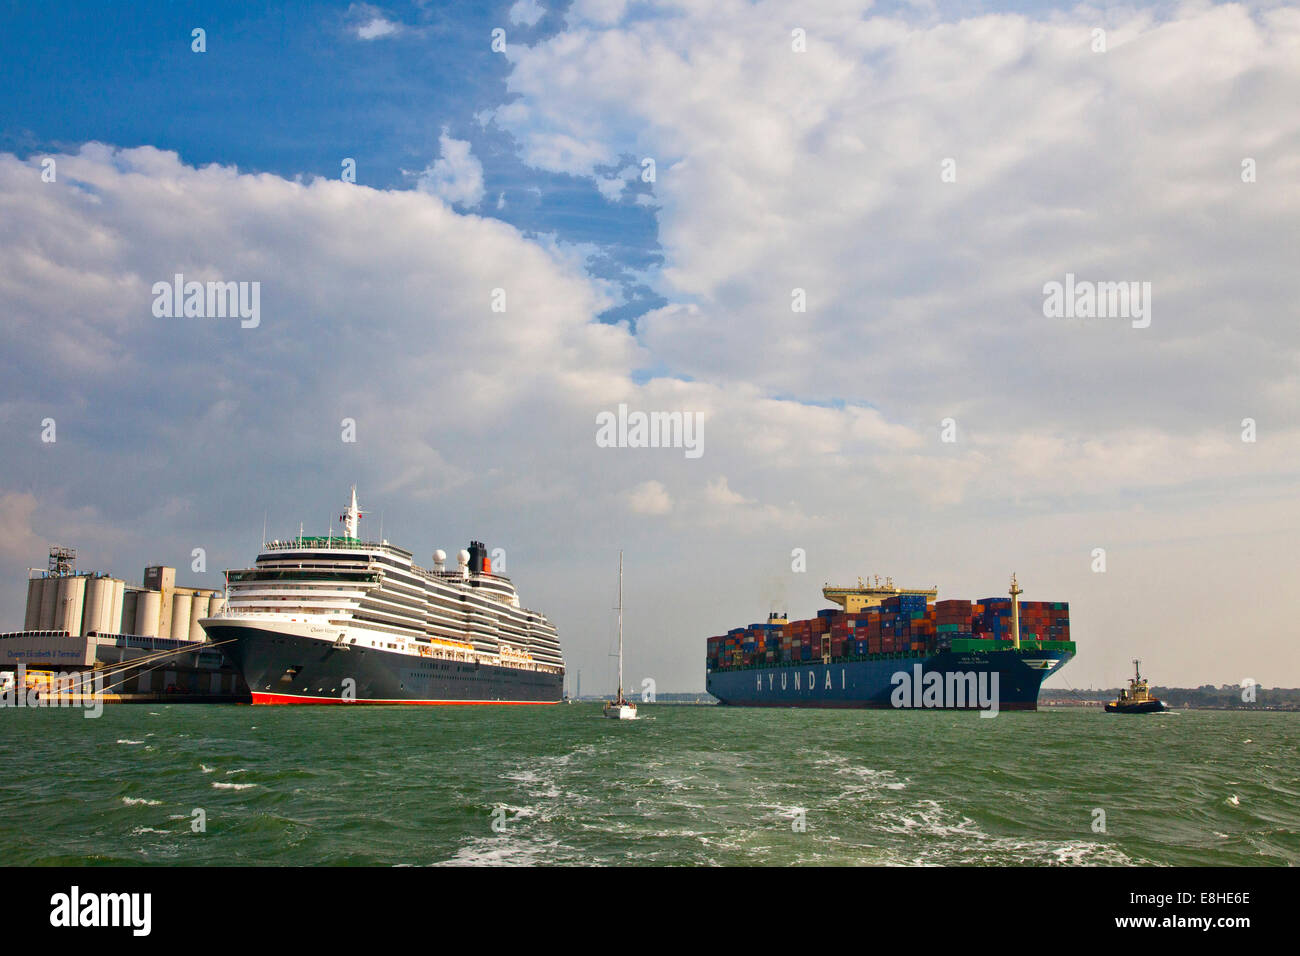 The Cunard cruise liner Queen Elizabeth2 and cargo ship Hyundai in Southampton docks - Stock Image